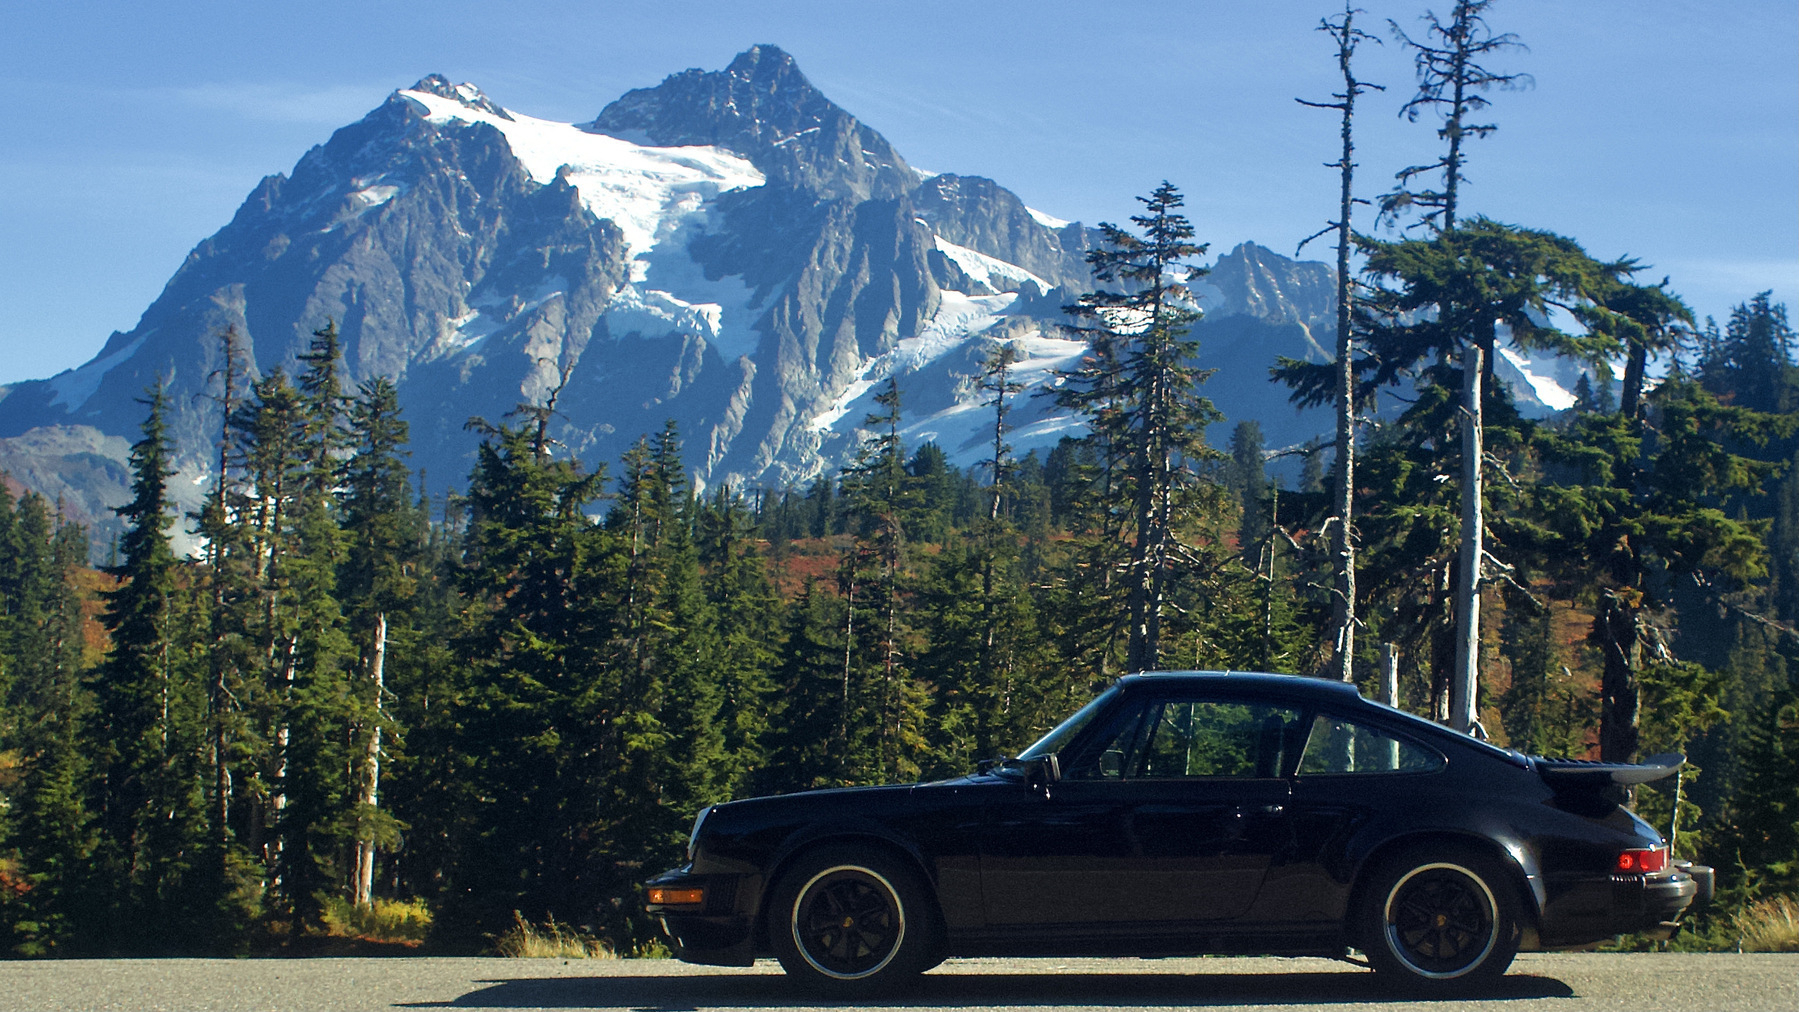 A black vintage 911 in front of a dramatic mountain vista